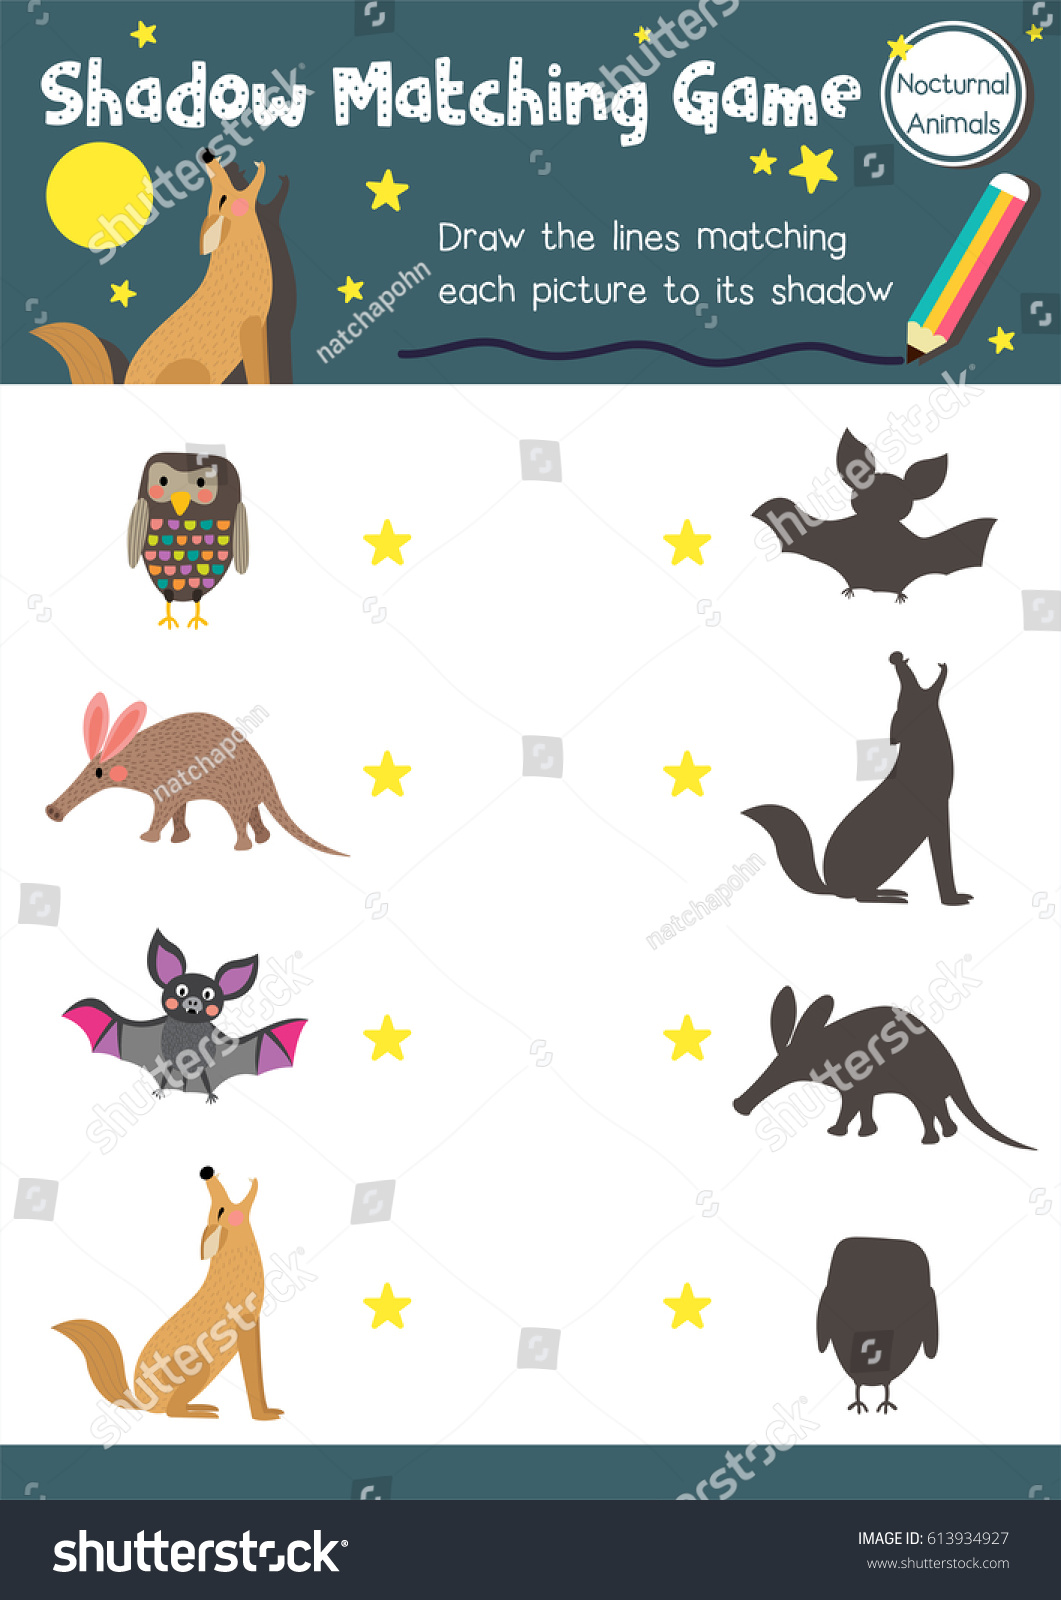 Shadow Matching Game Nocturnal Animals Preschool Stock Vector